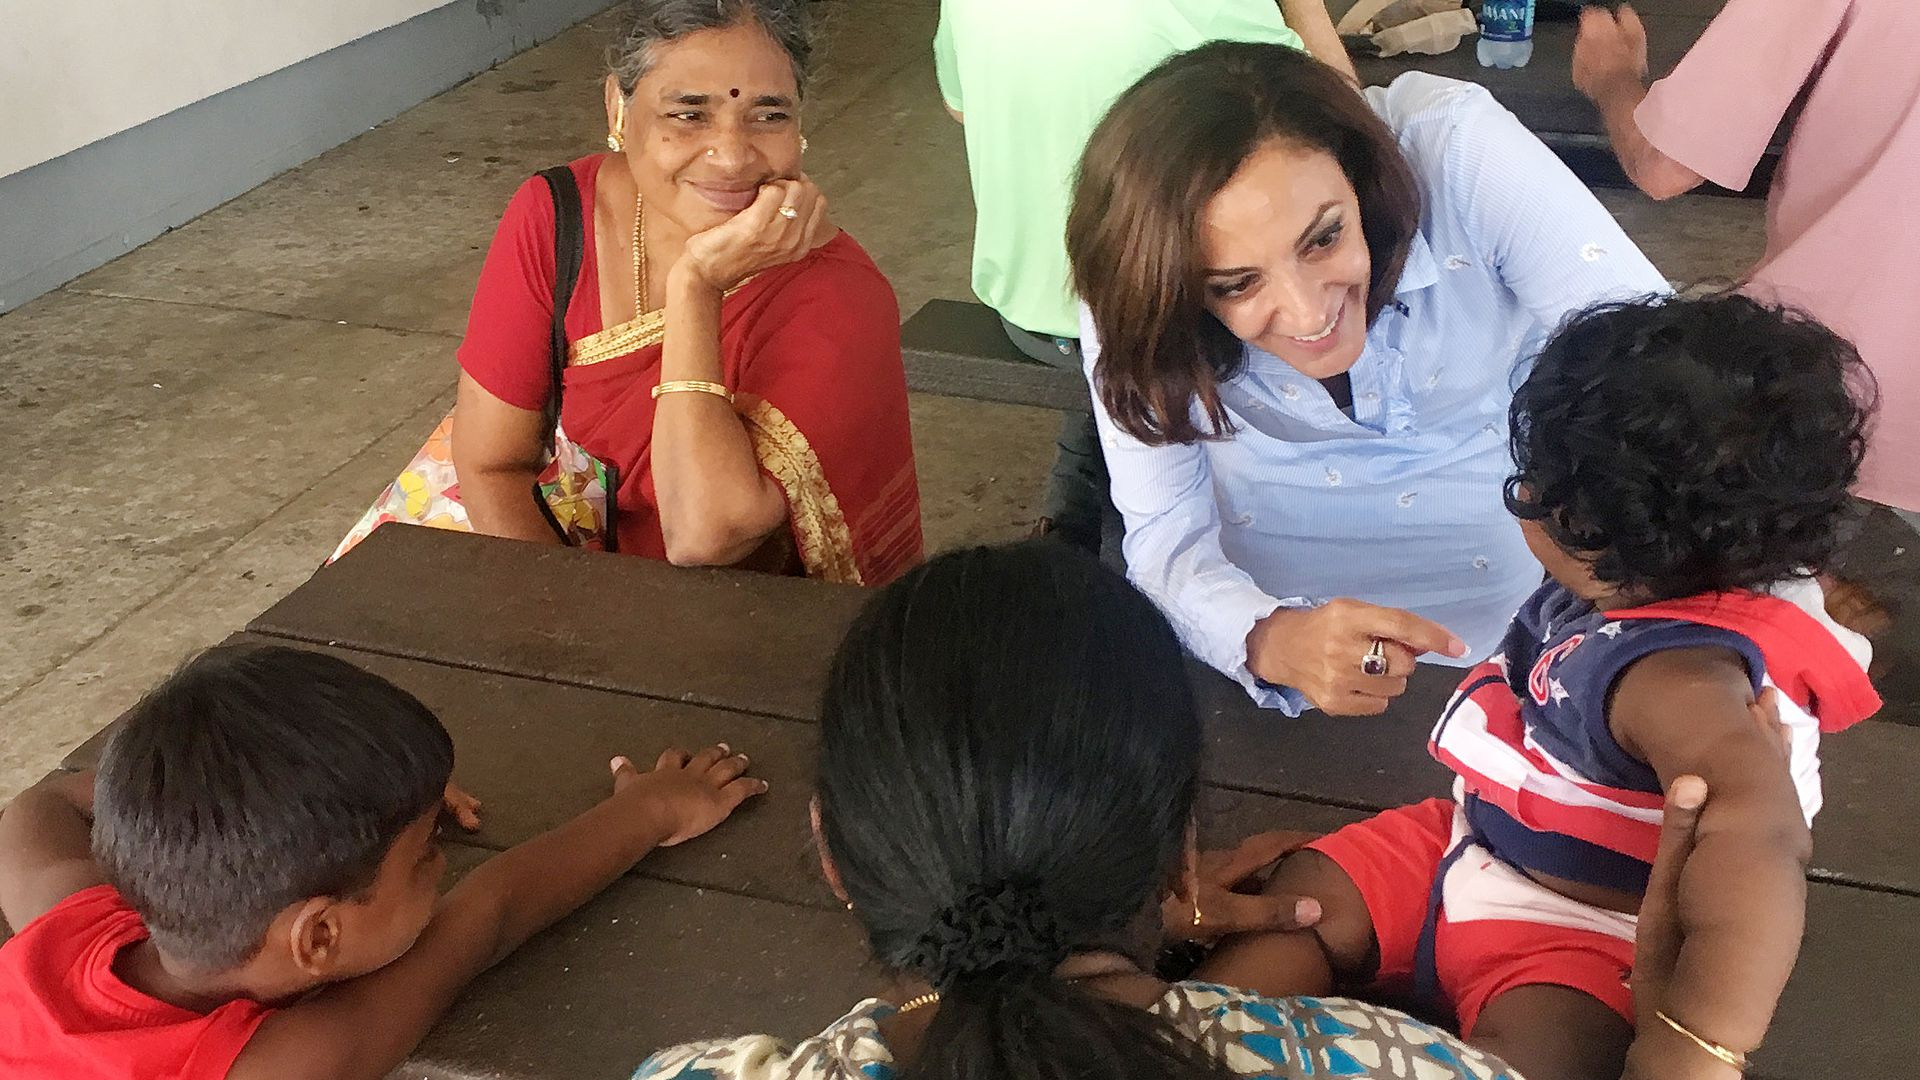 Katie Arrington chats with children and a mother in South Carolina